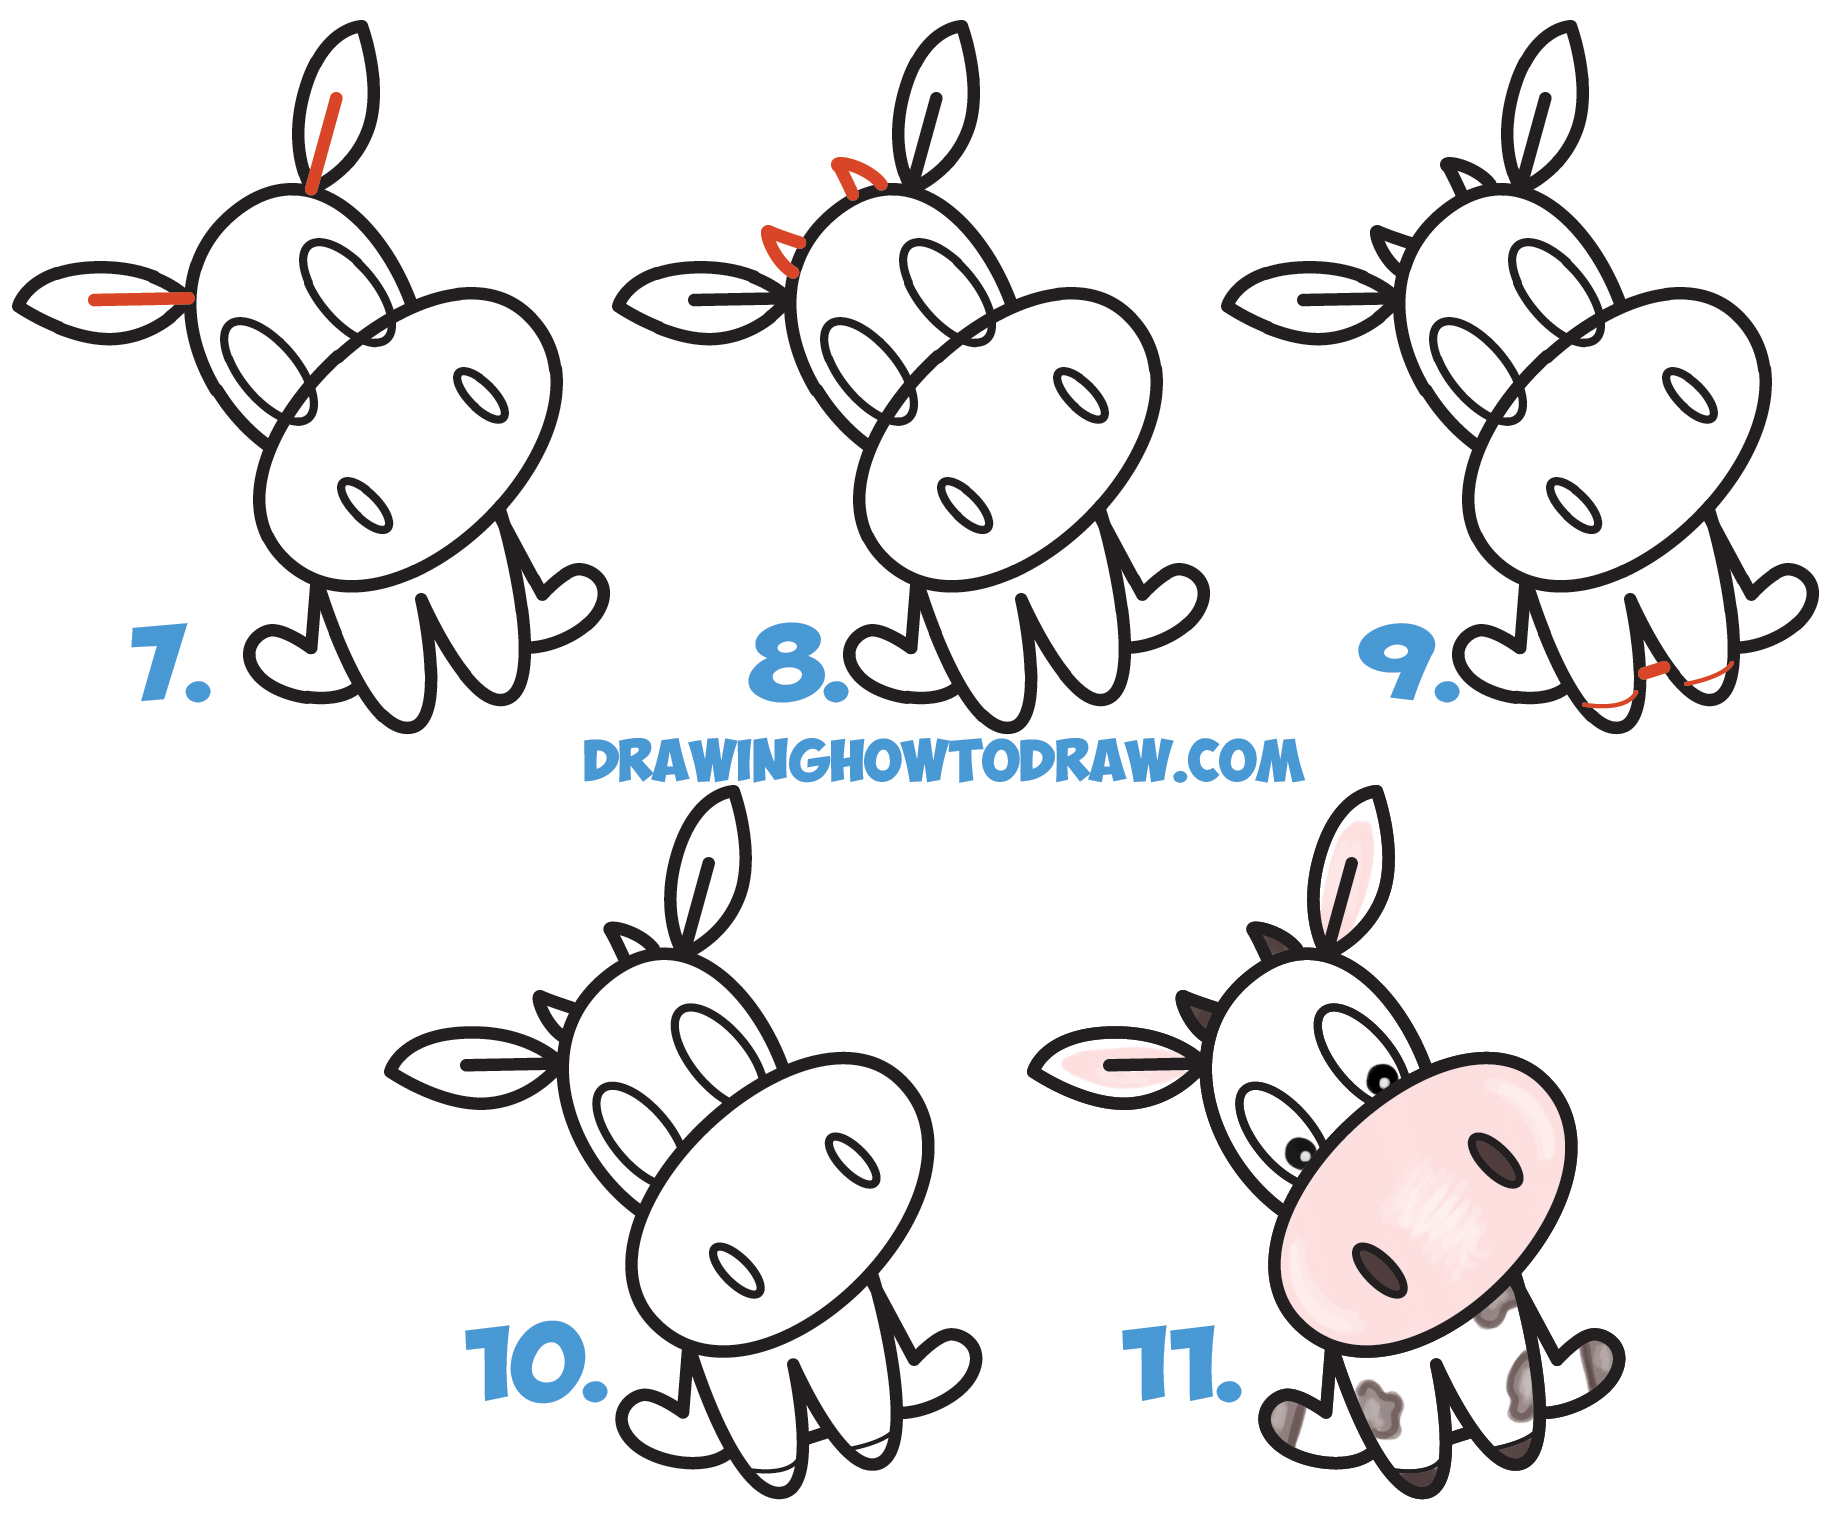 Learn How to Draw a Cute Cartoon Kawaii / Chibi Cow Word Toon Simple Steps Drawing Lesson for Beginners